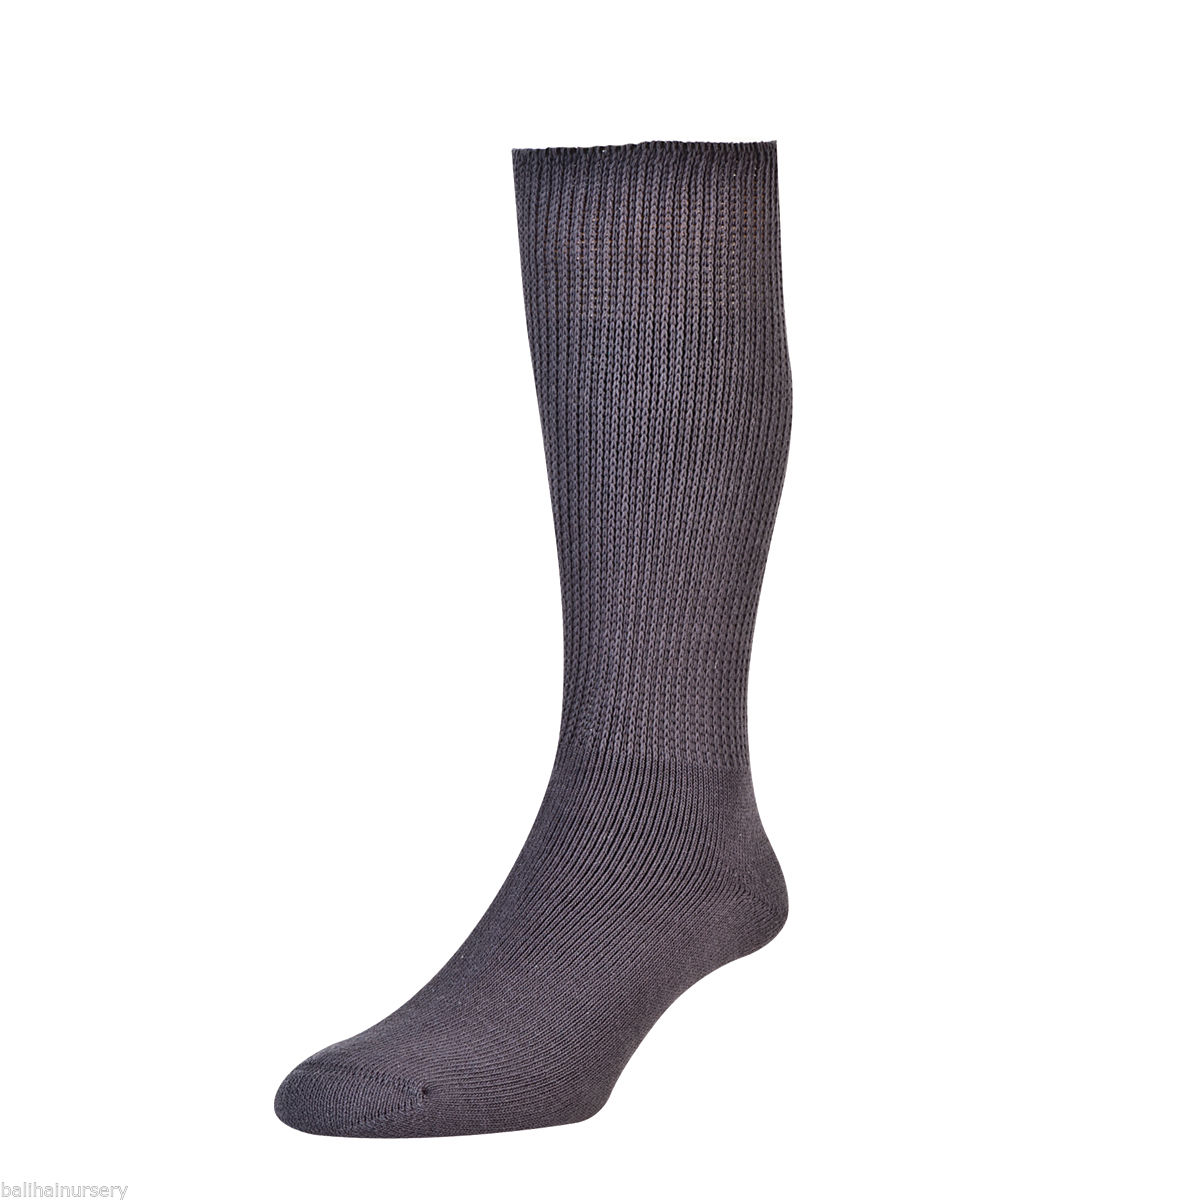 HJ Hall Diabetic Cotton Socks size 6-11 Mid Grey HJ1351 12 pairs